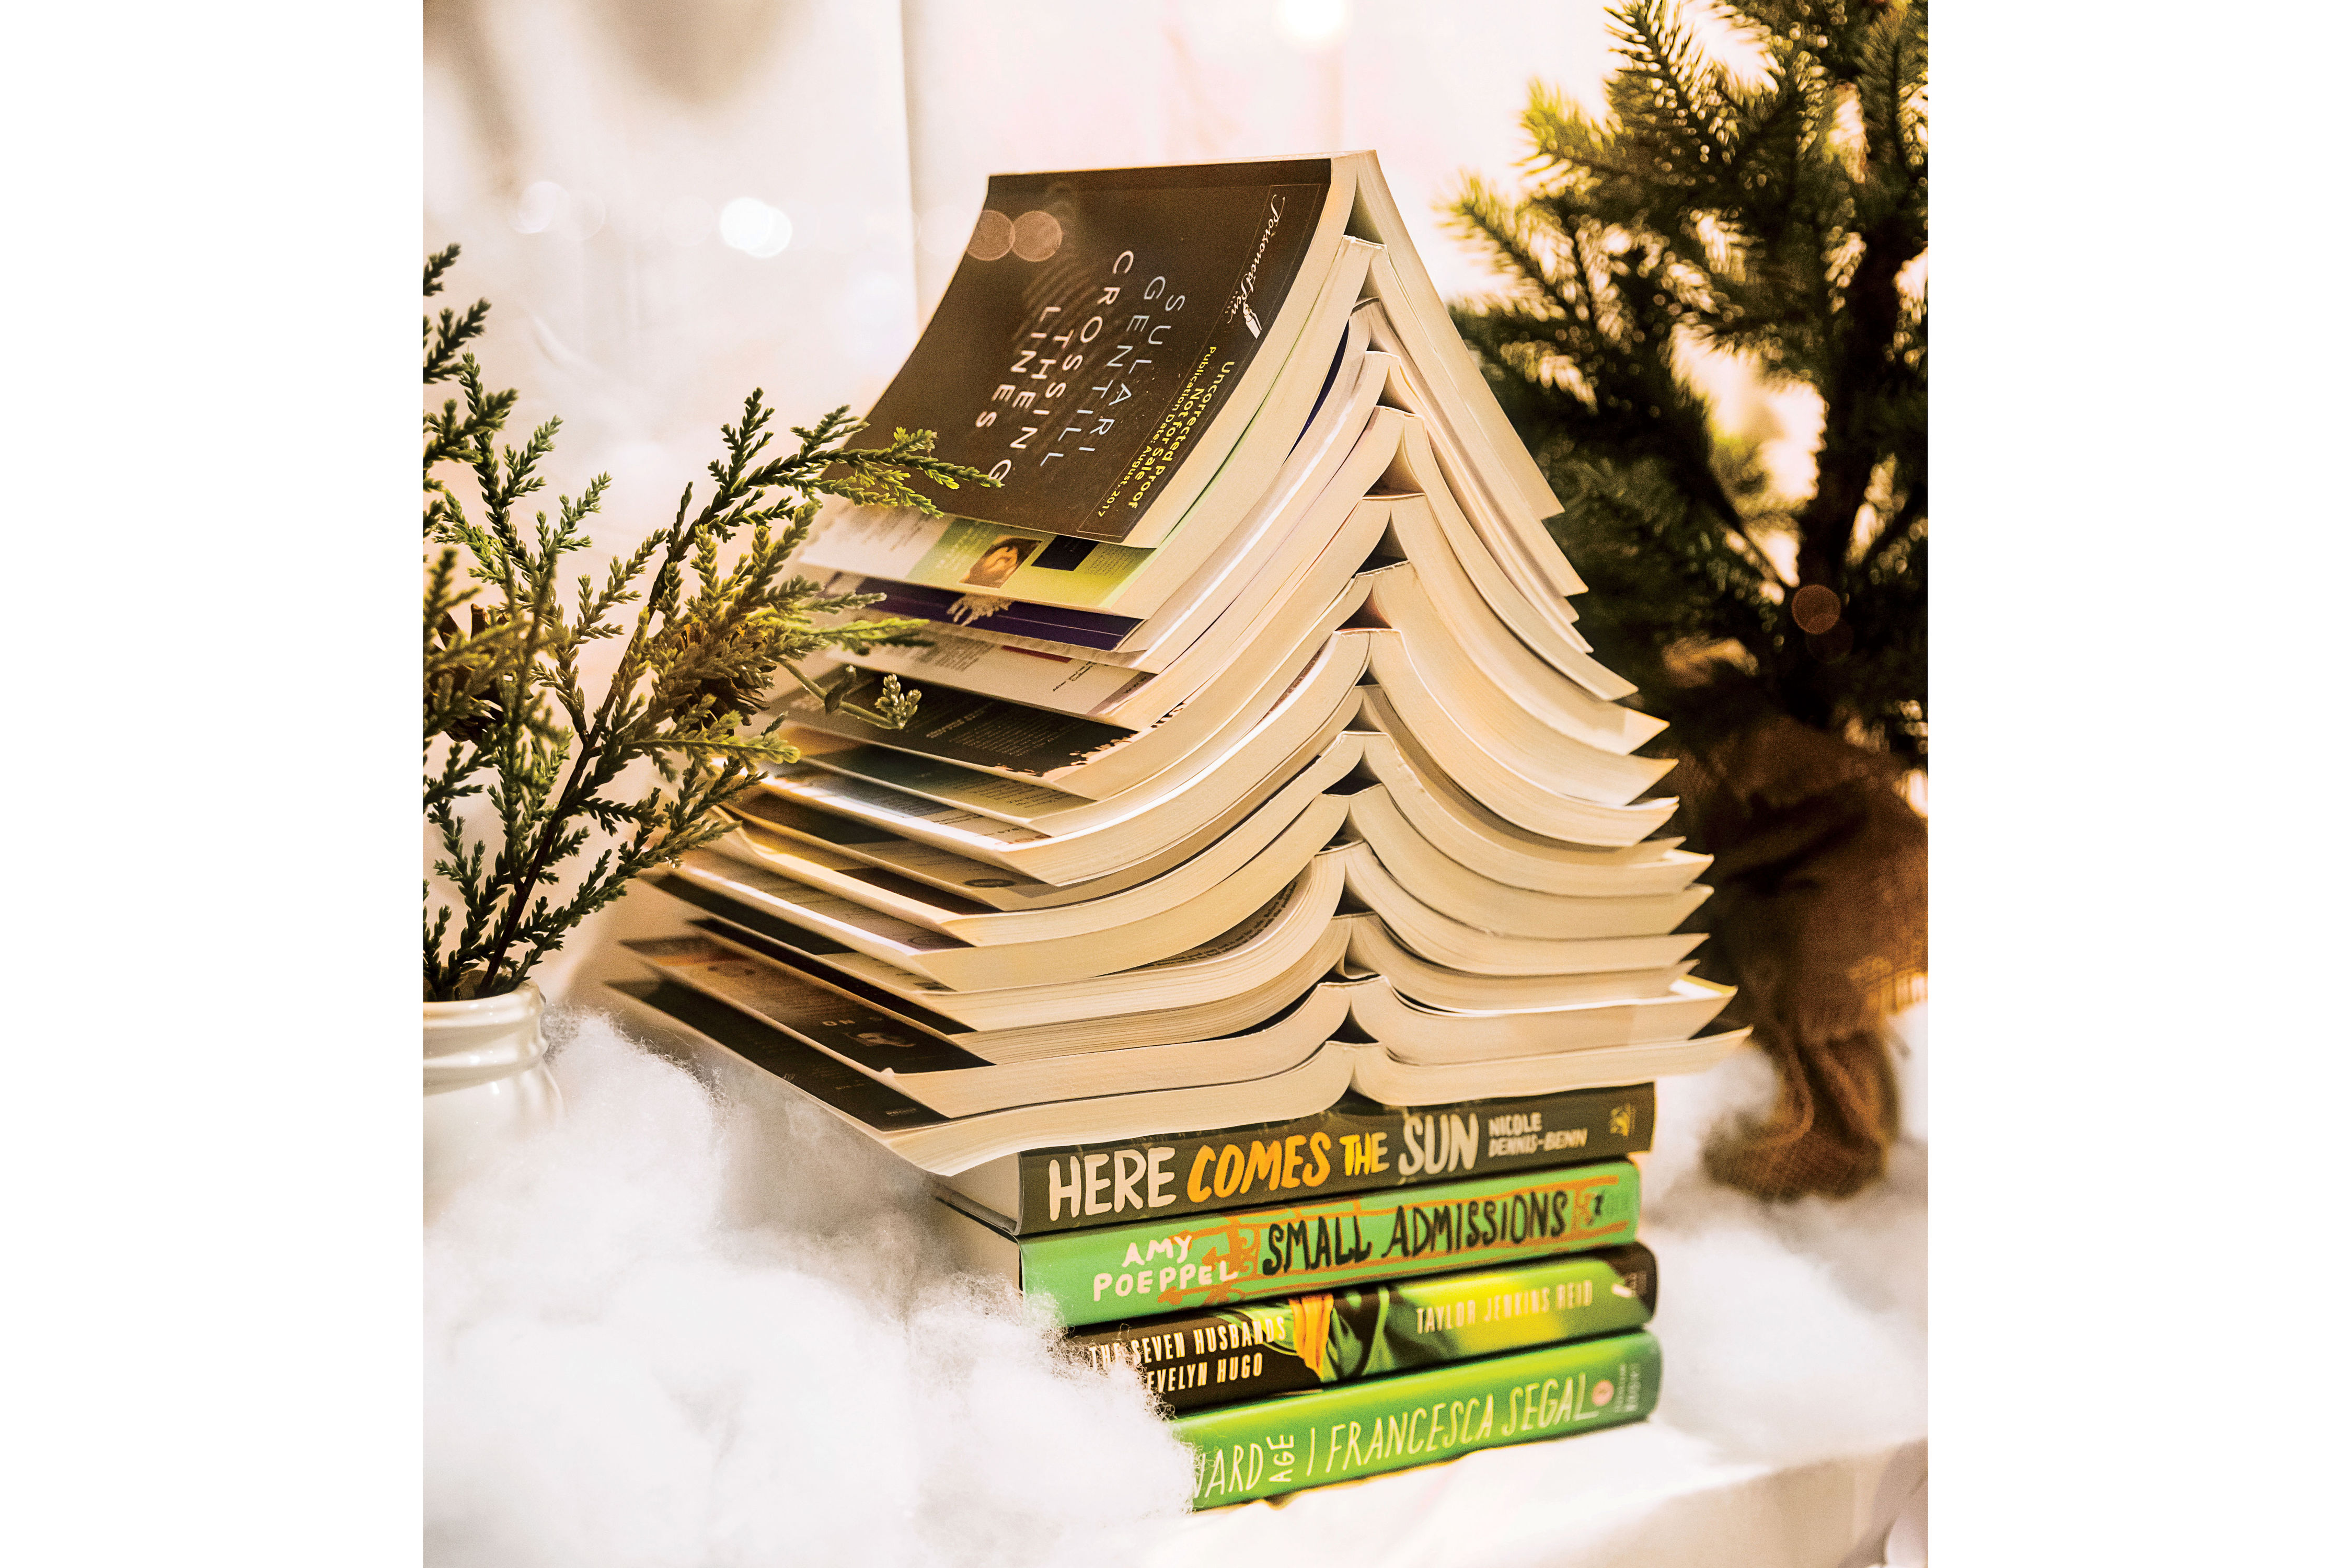 WATCH: The Book Christmas Tree Is a Trend – And We Love It!